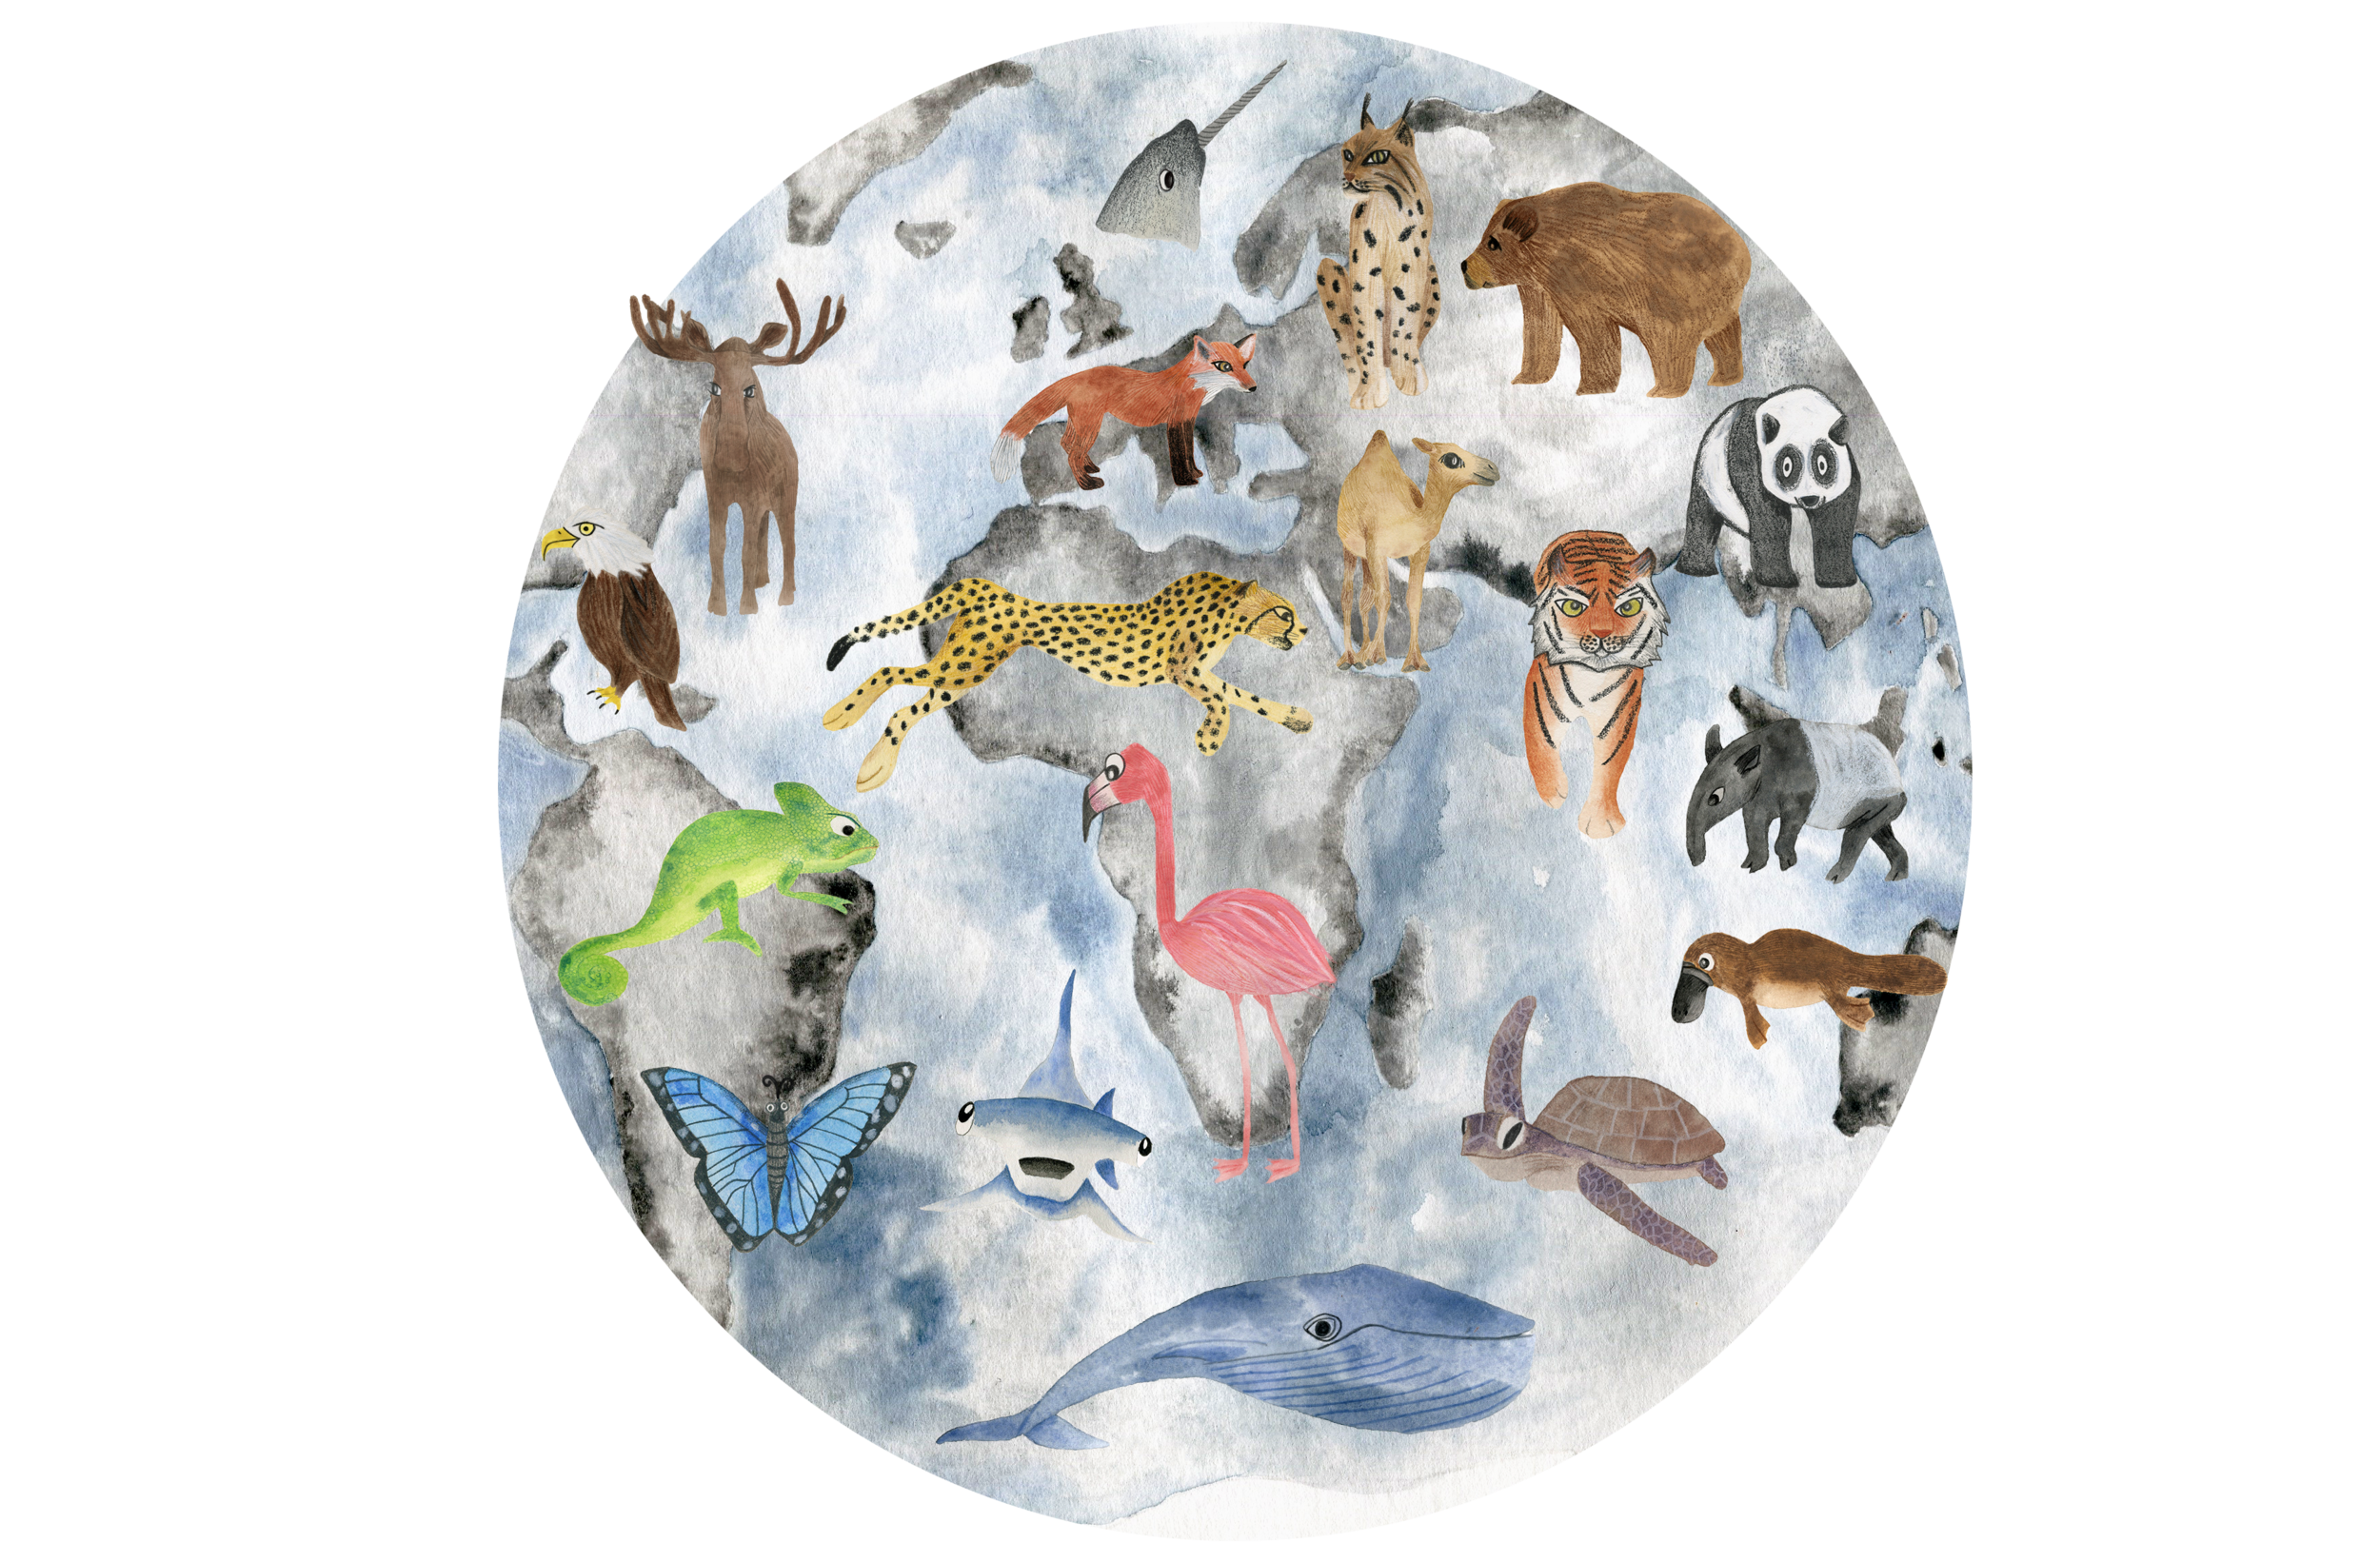 Animal map illustration by Briony Dixon